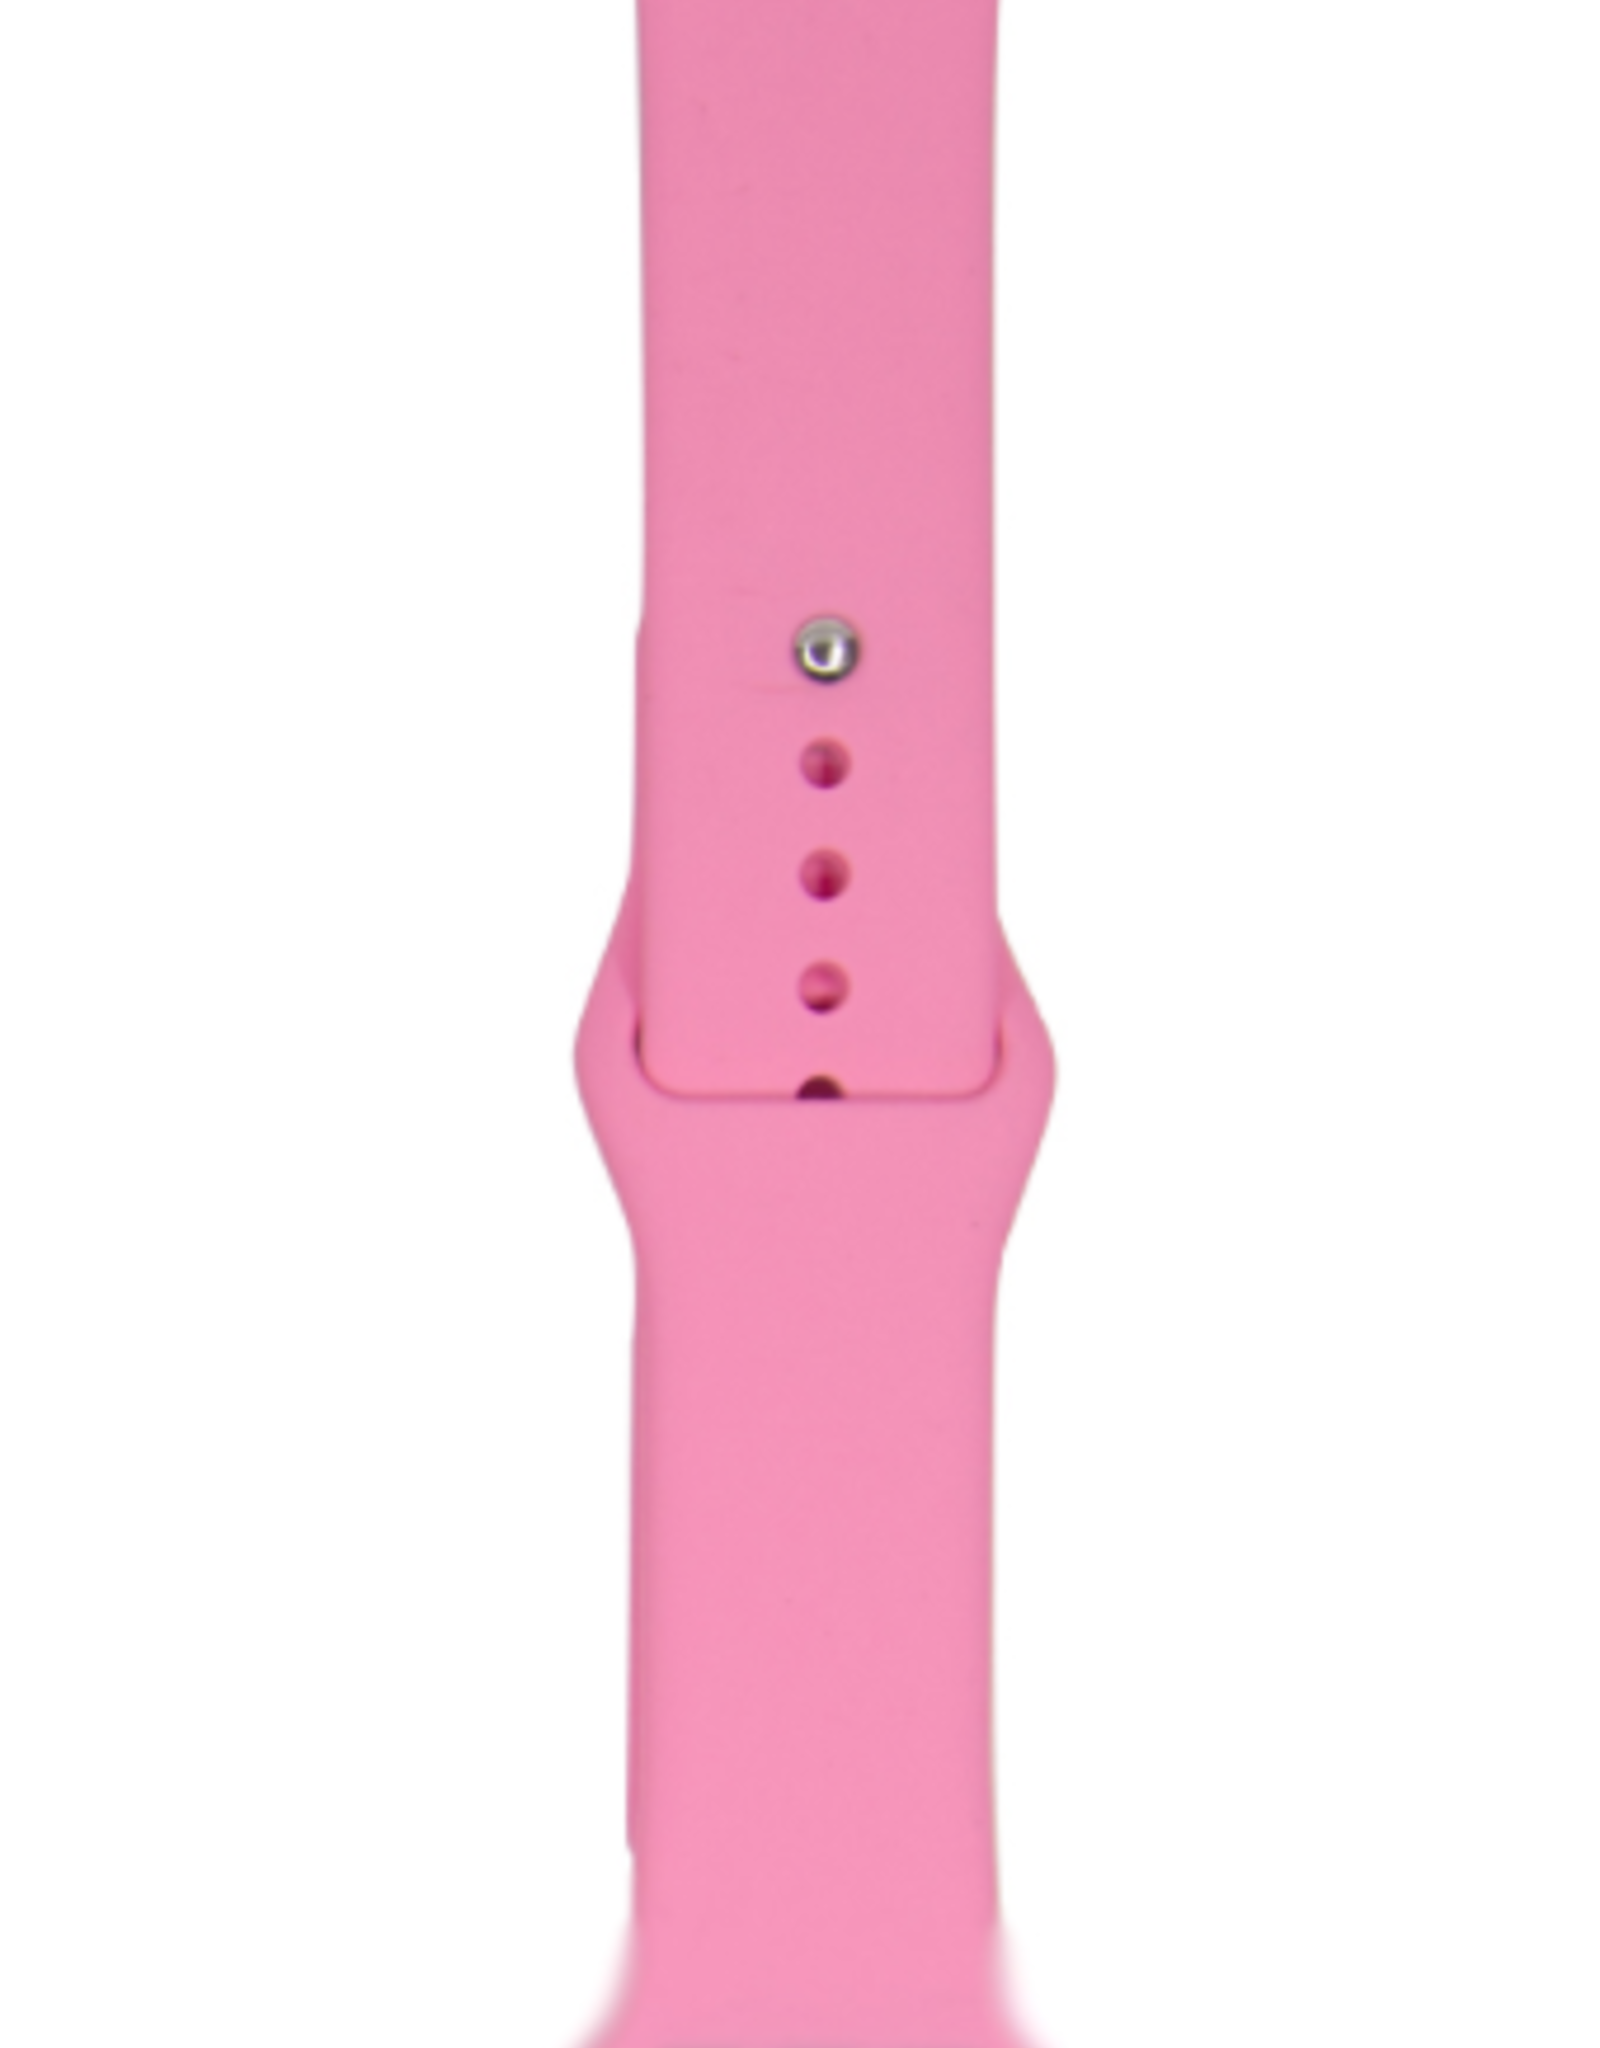 Classic silicone replacement band strap for Apple Watch band series 6 5 4 3 2 1 Band Color:# 6 light pink,Band Width:42/44mm M/L